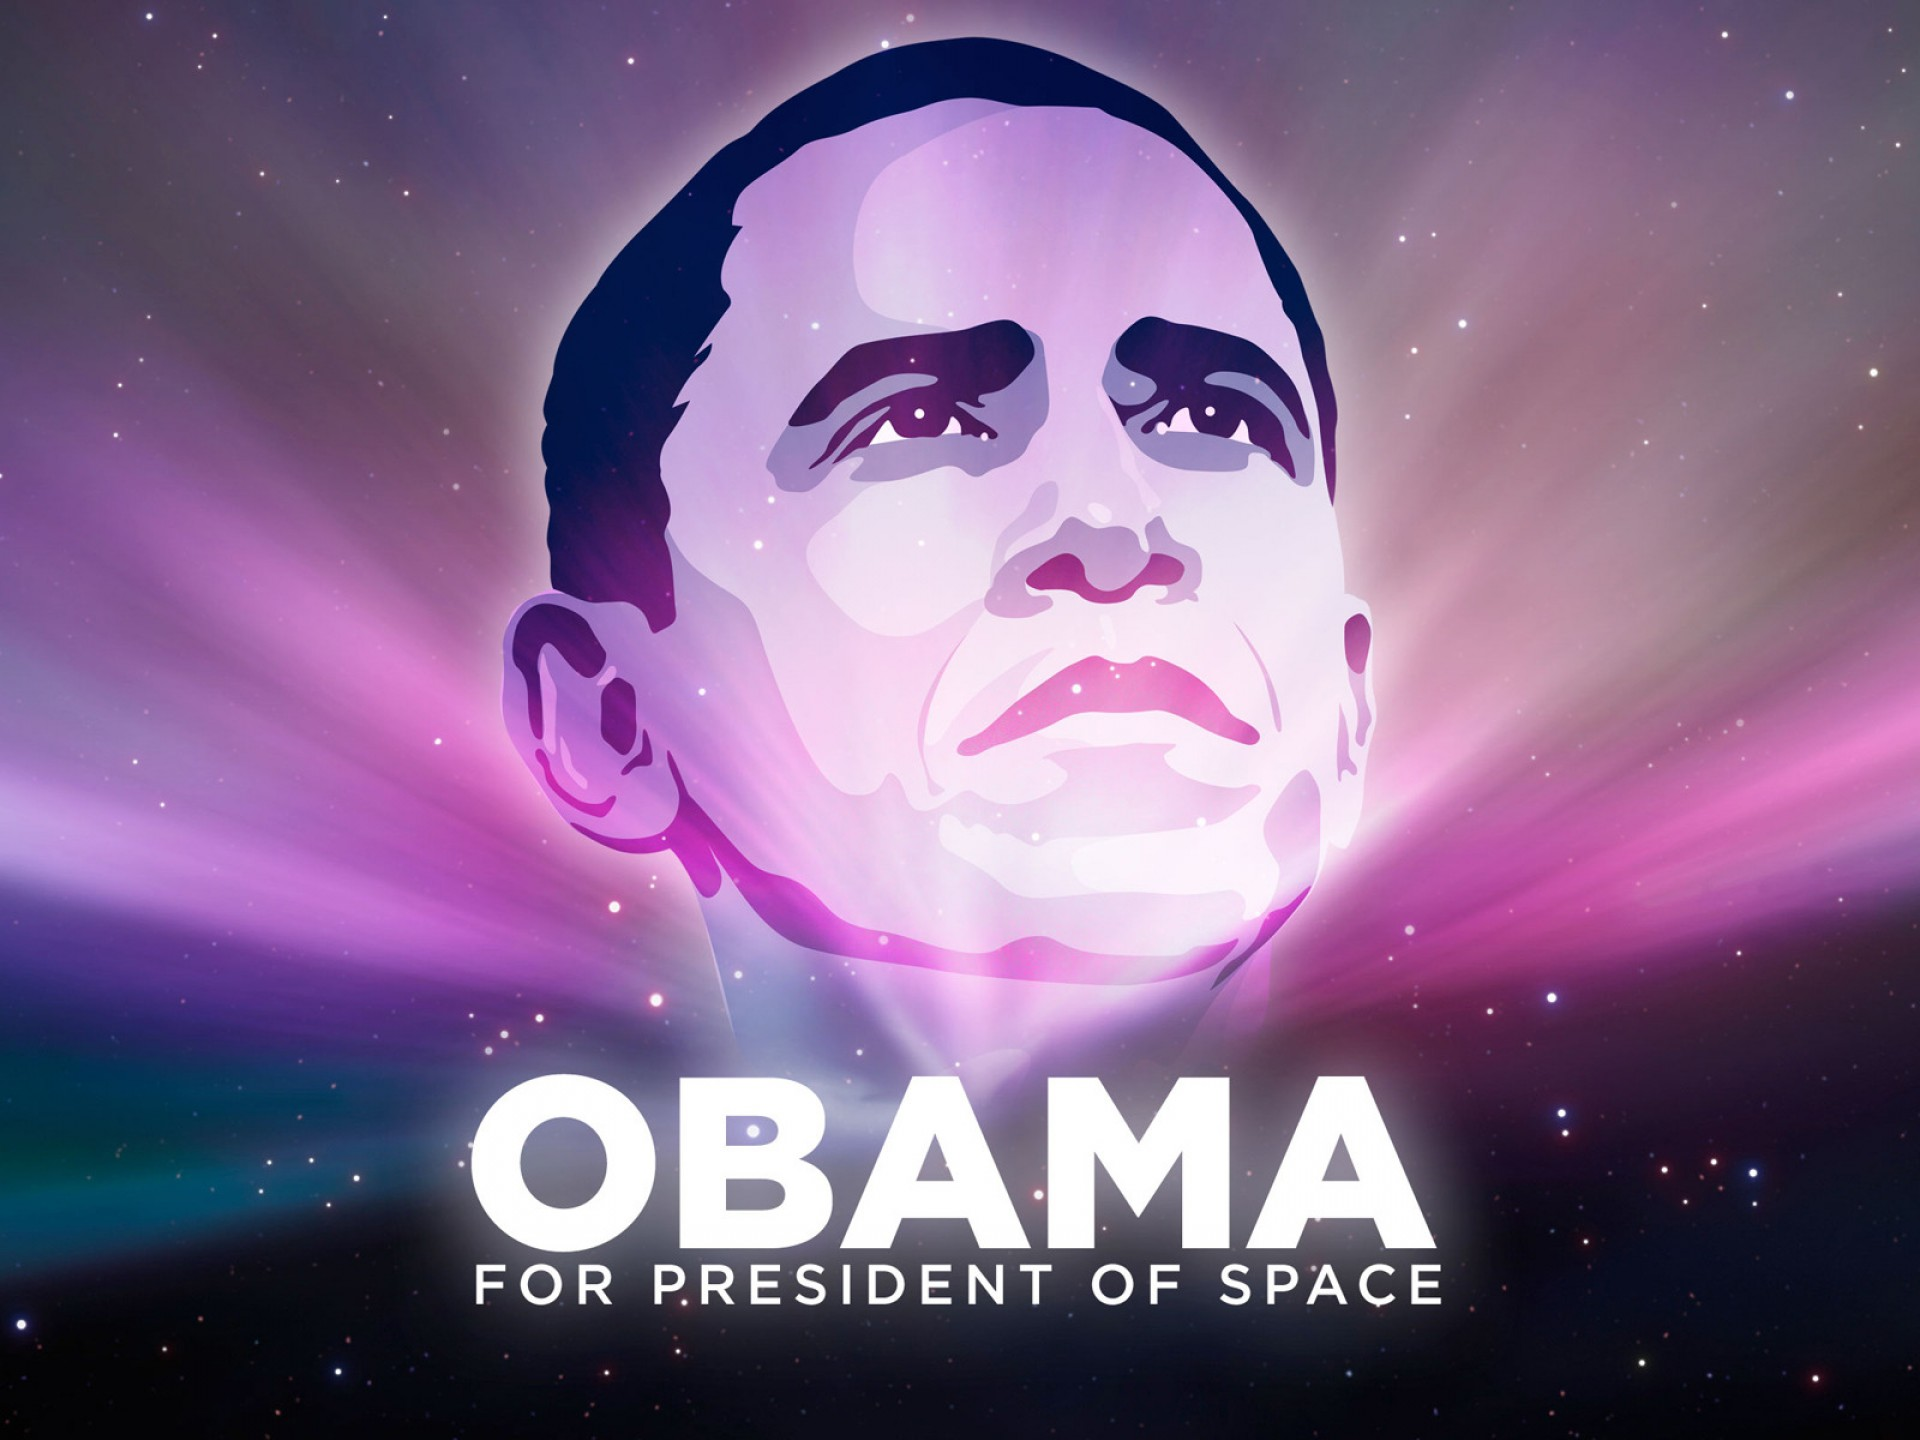 Obama  for president  space HD Wallpaper